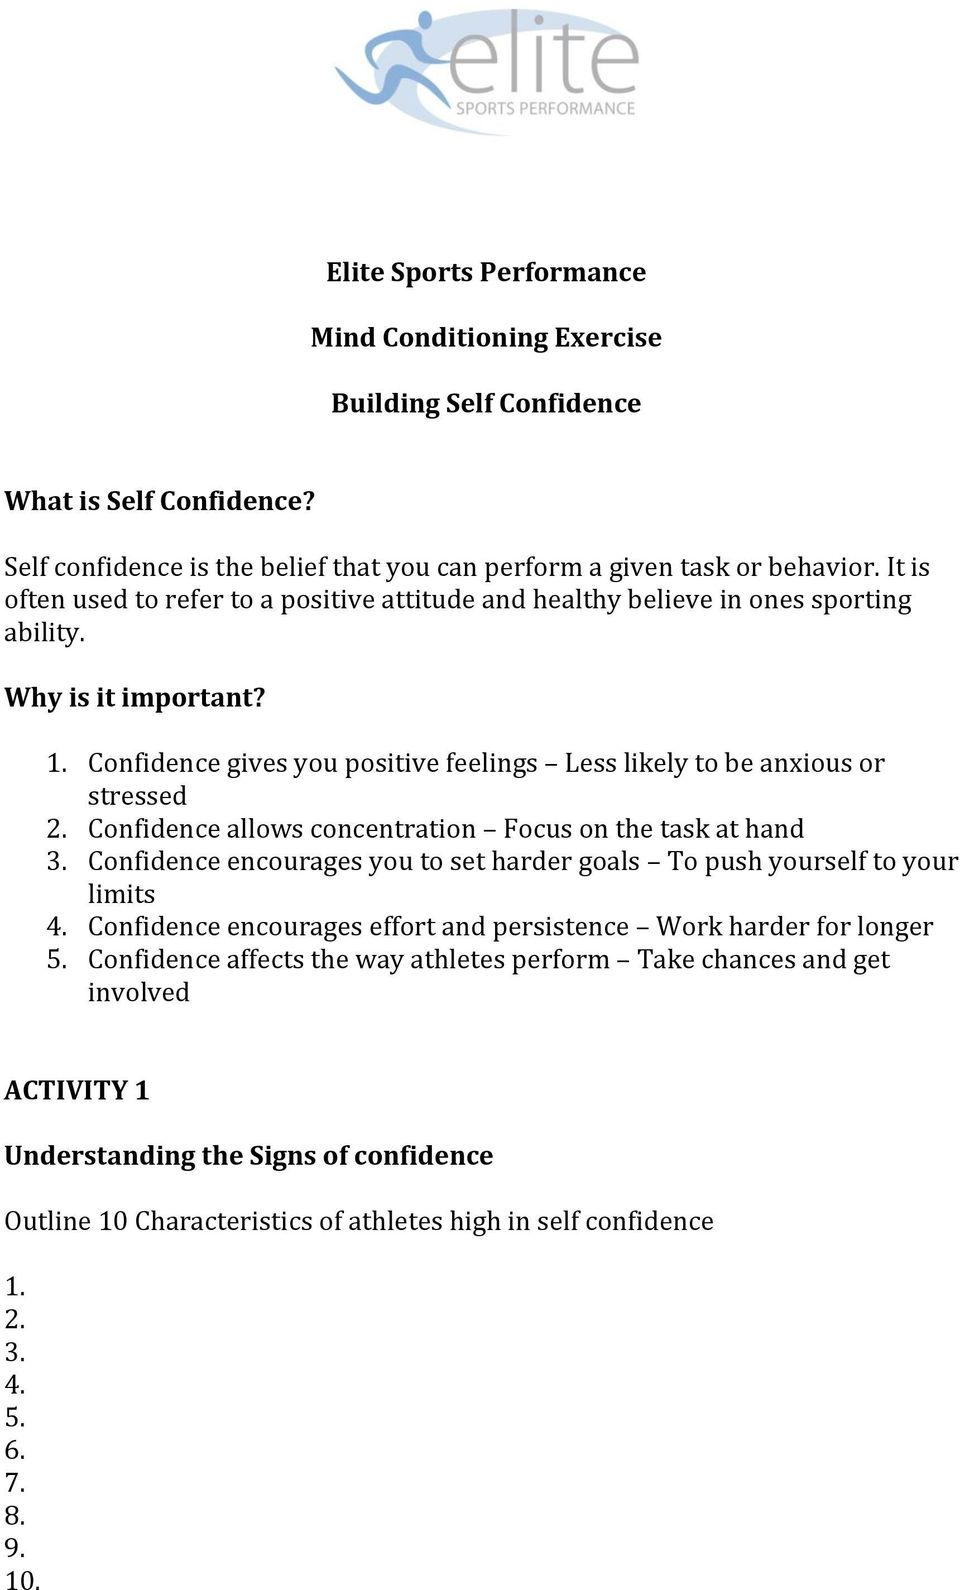 Confidence allows concentration Focus on the task at hand 3. Confidence encourages you to set harder goals To push yourself to your limits 4.